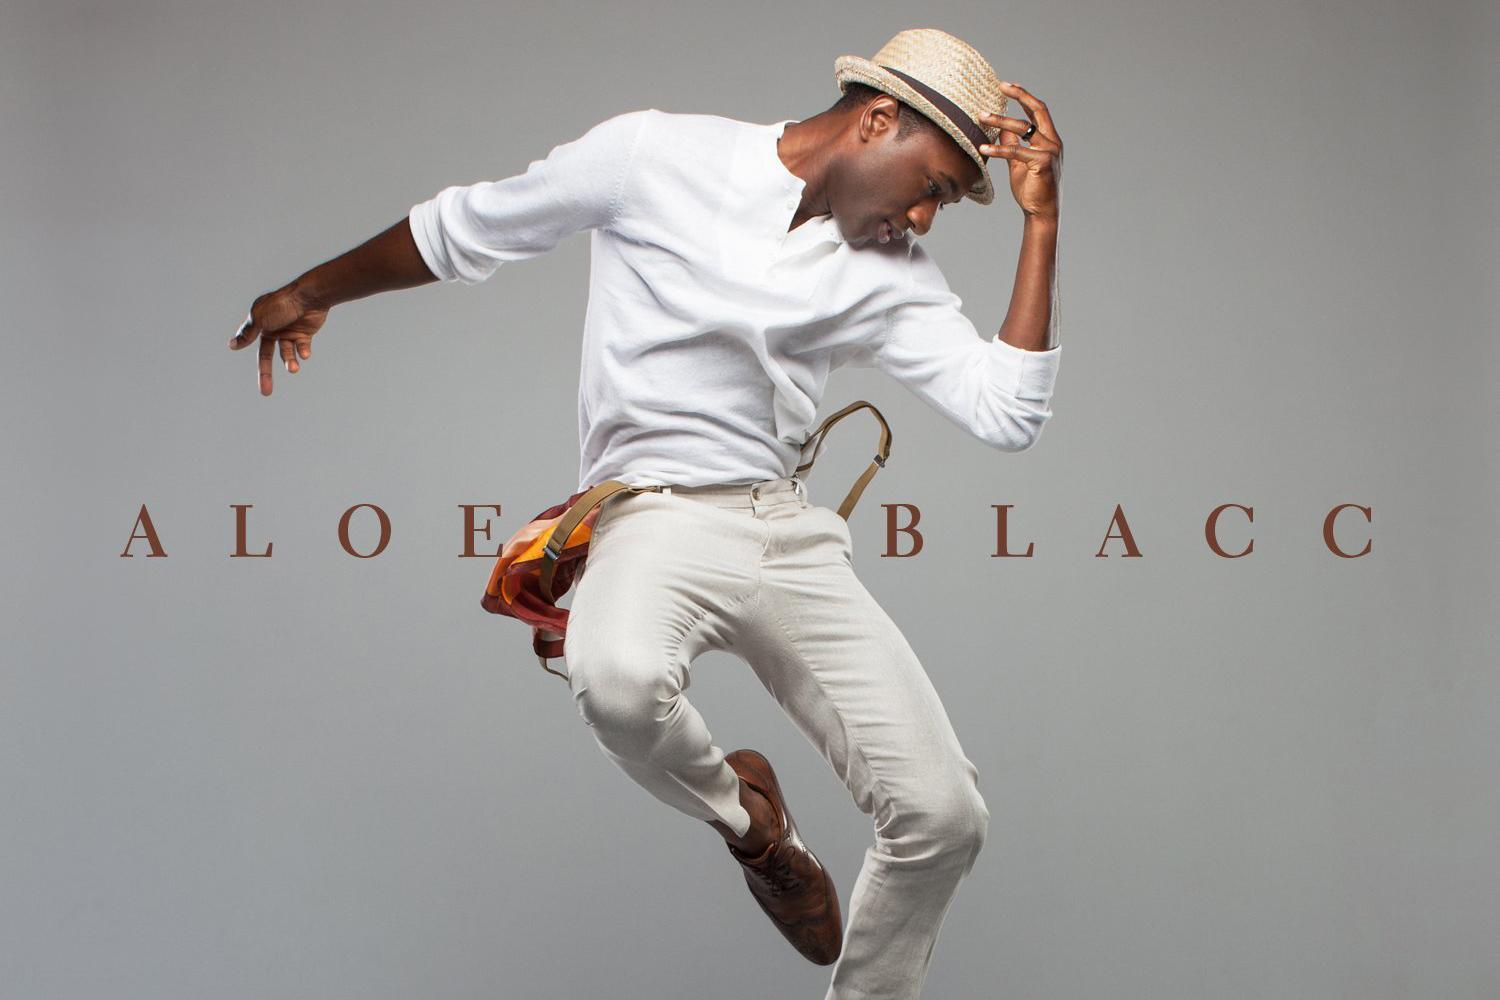 Aloe Blacc makes a name for himself in latest record